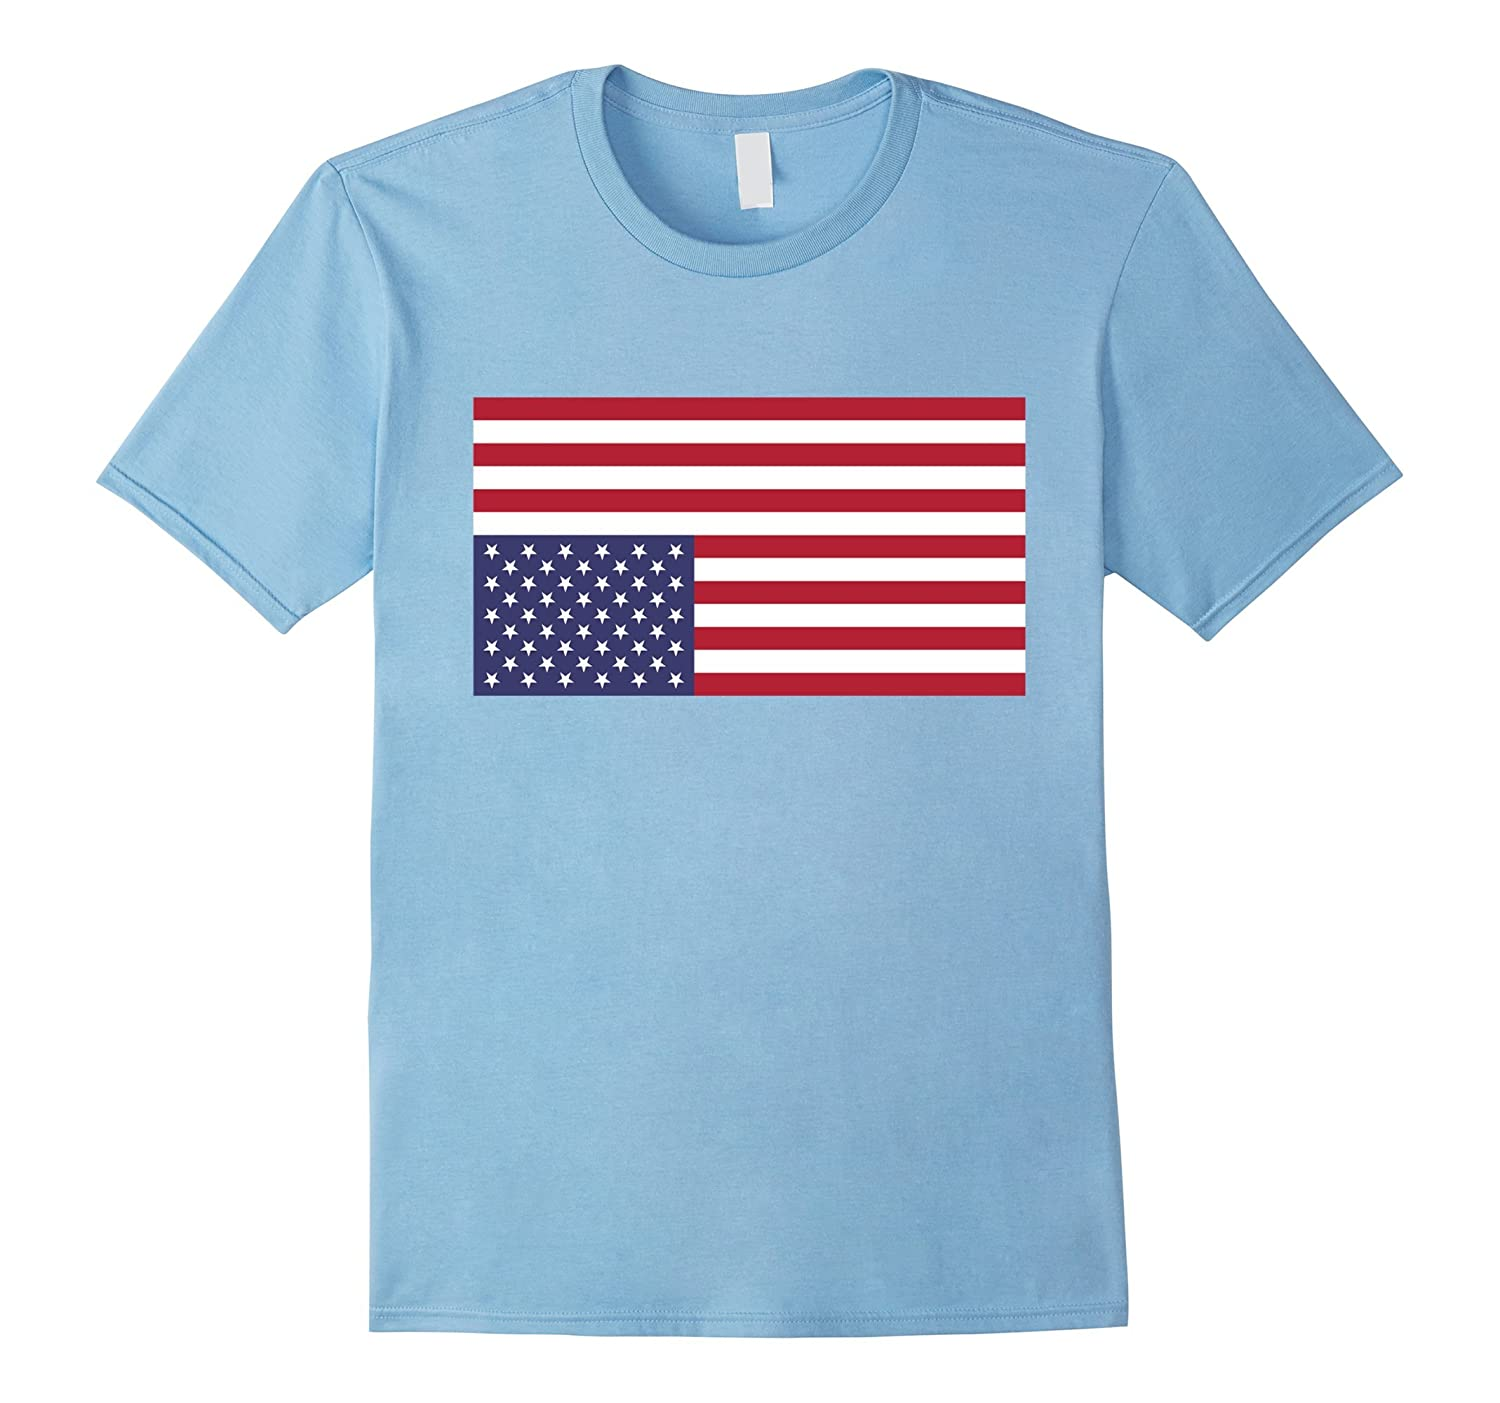 Upside Down American Flag US in Distress Tshirt